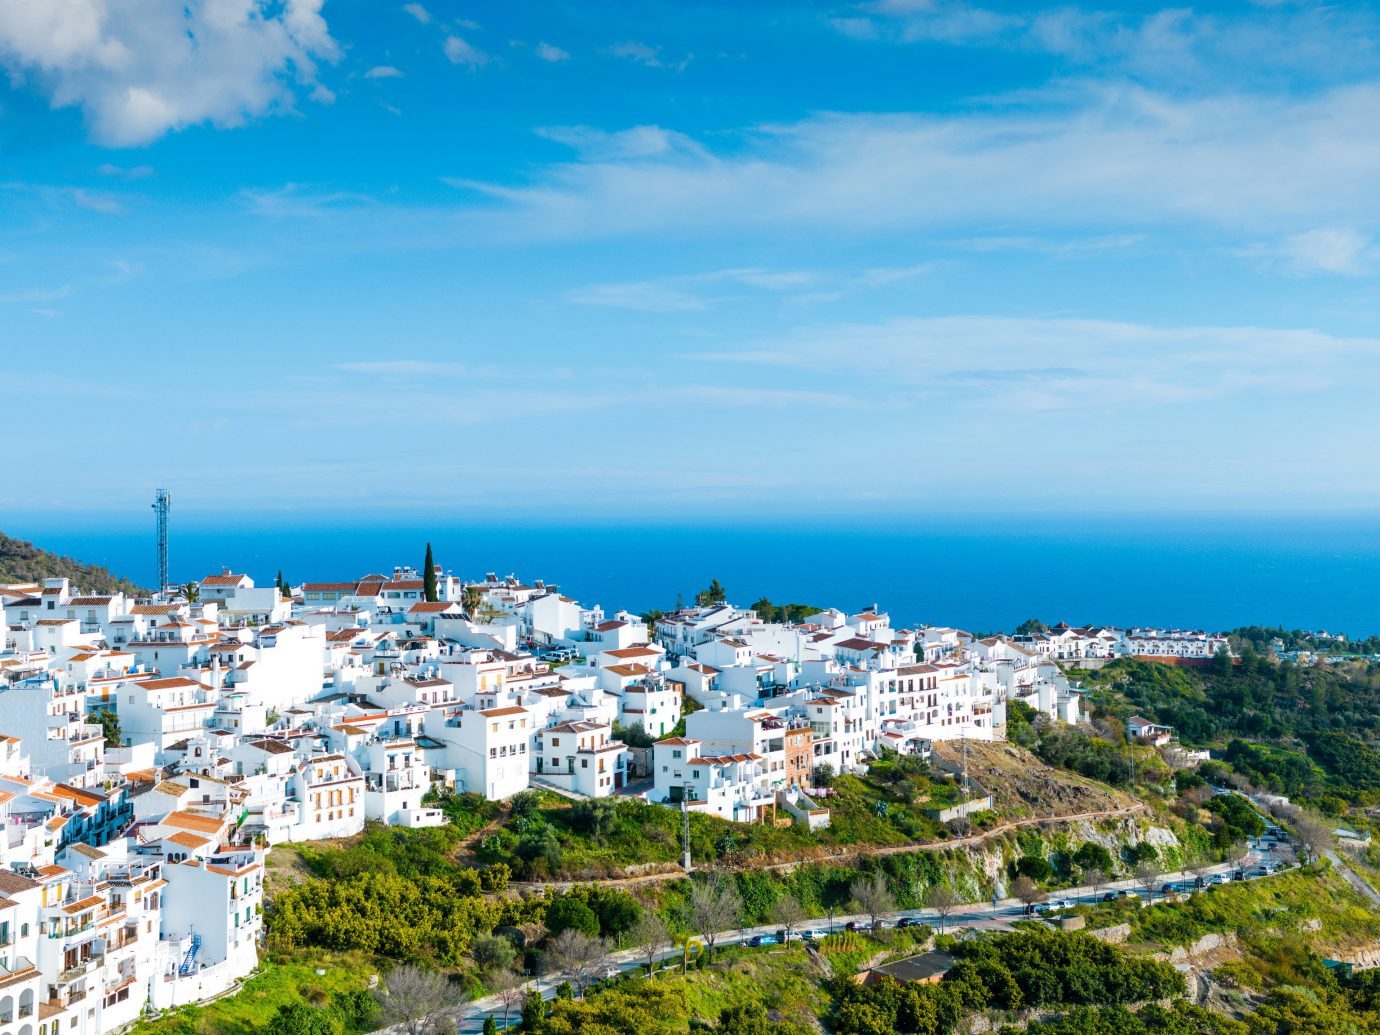 europe Spain Trip Ideas sky Sea Coast cloud promontory City Town horizon daytime Village tourism bay tree cape bird's eye view coastal and oceanic landforms Ocean mountain water mount scenery panorama